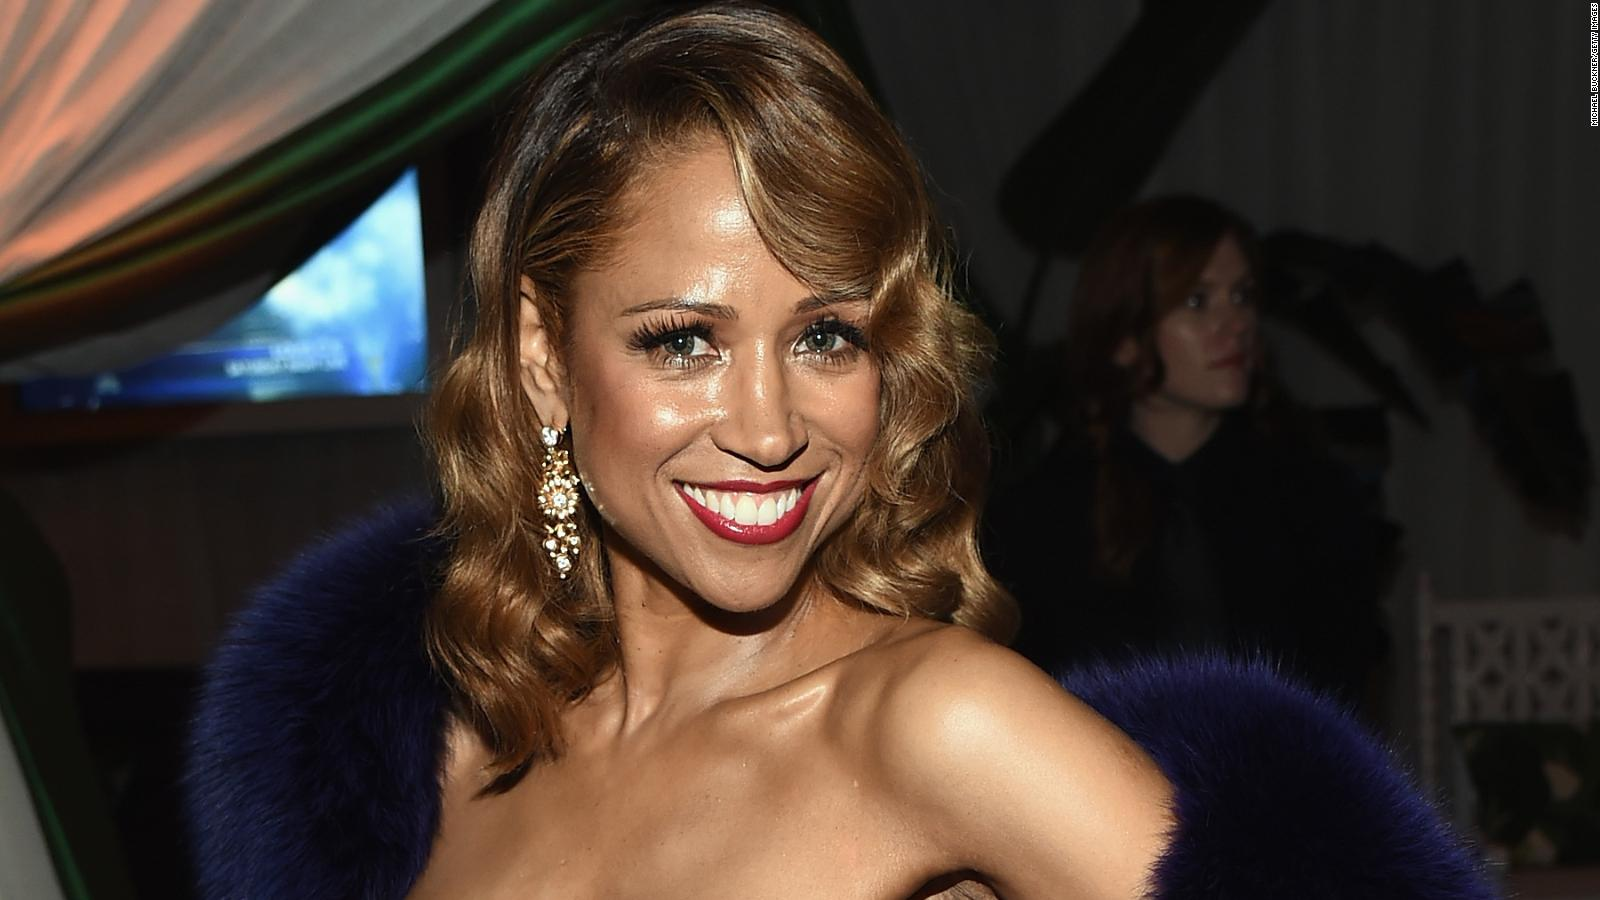 Stacey Dash naked (88 photos), Tits, Hot, Boobs, lingerie 2017